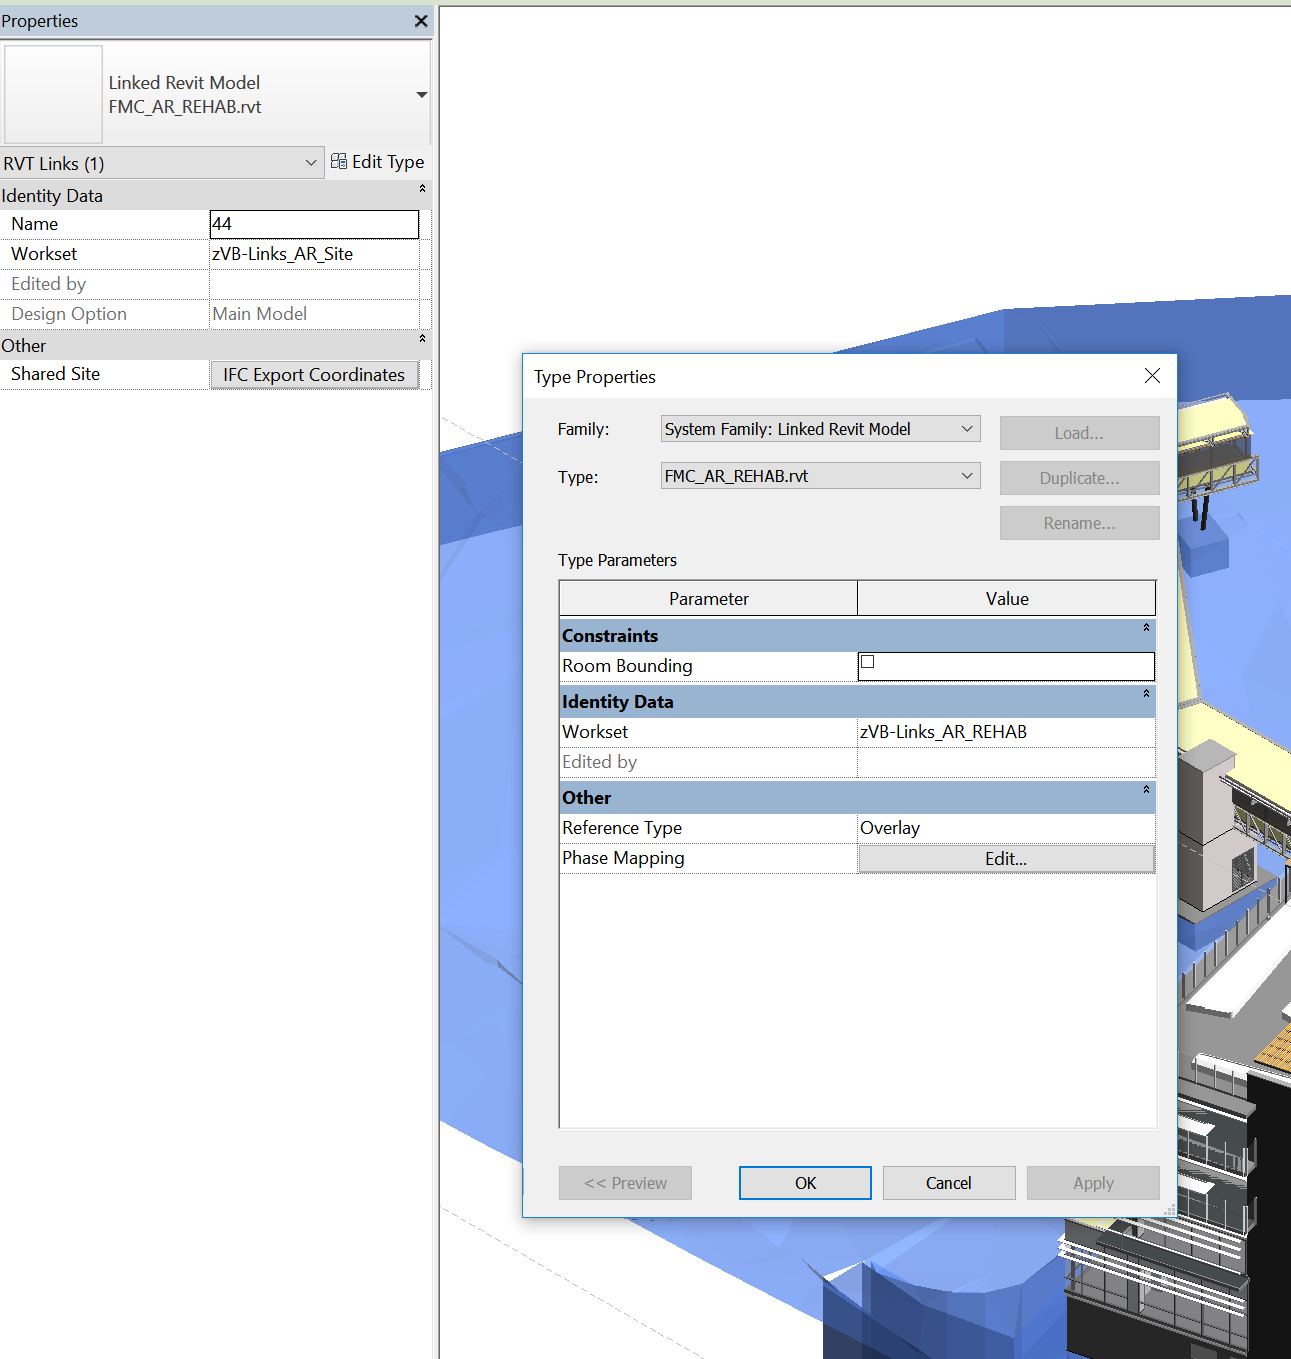 How To Display Multiple Instances of a Single Linked Revit Model In